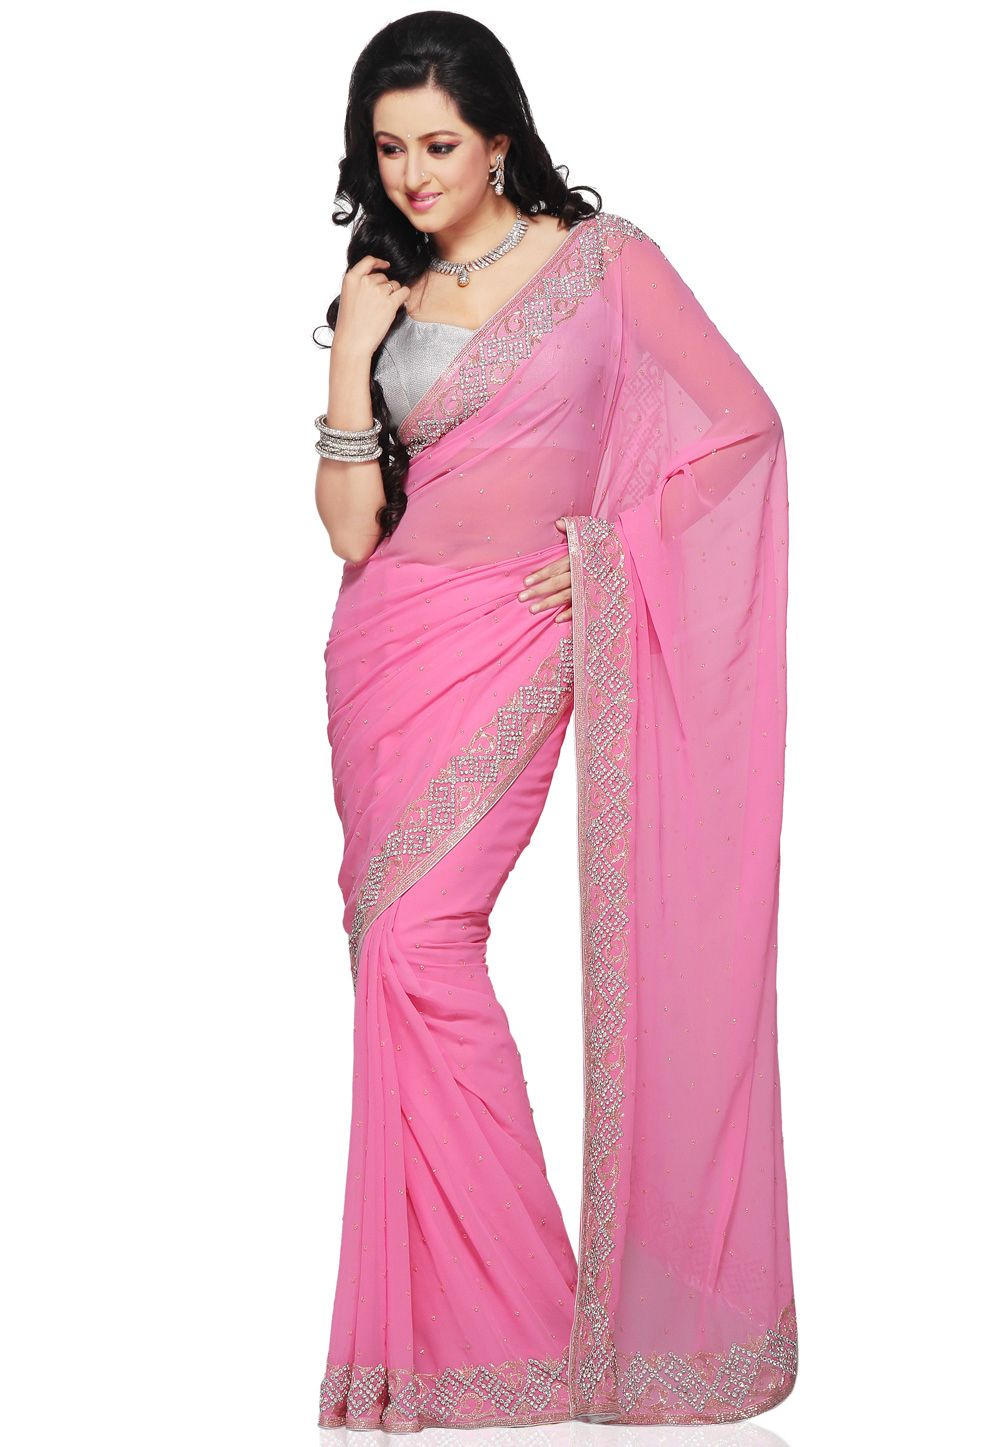 Pink saree | dress | Pinterest